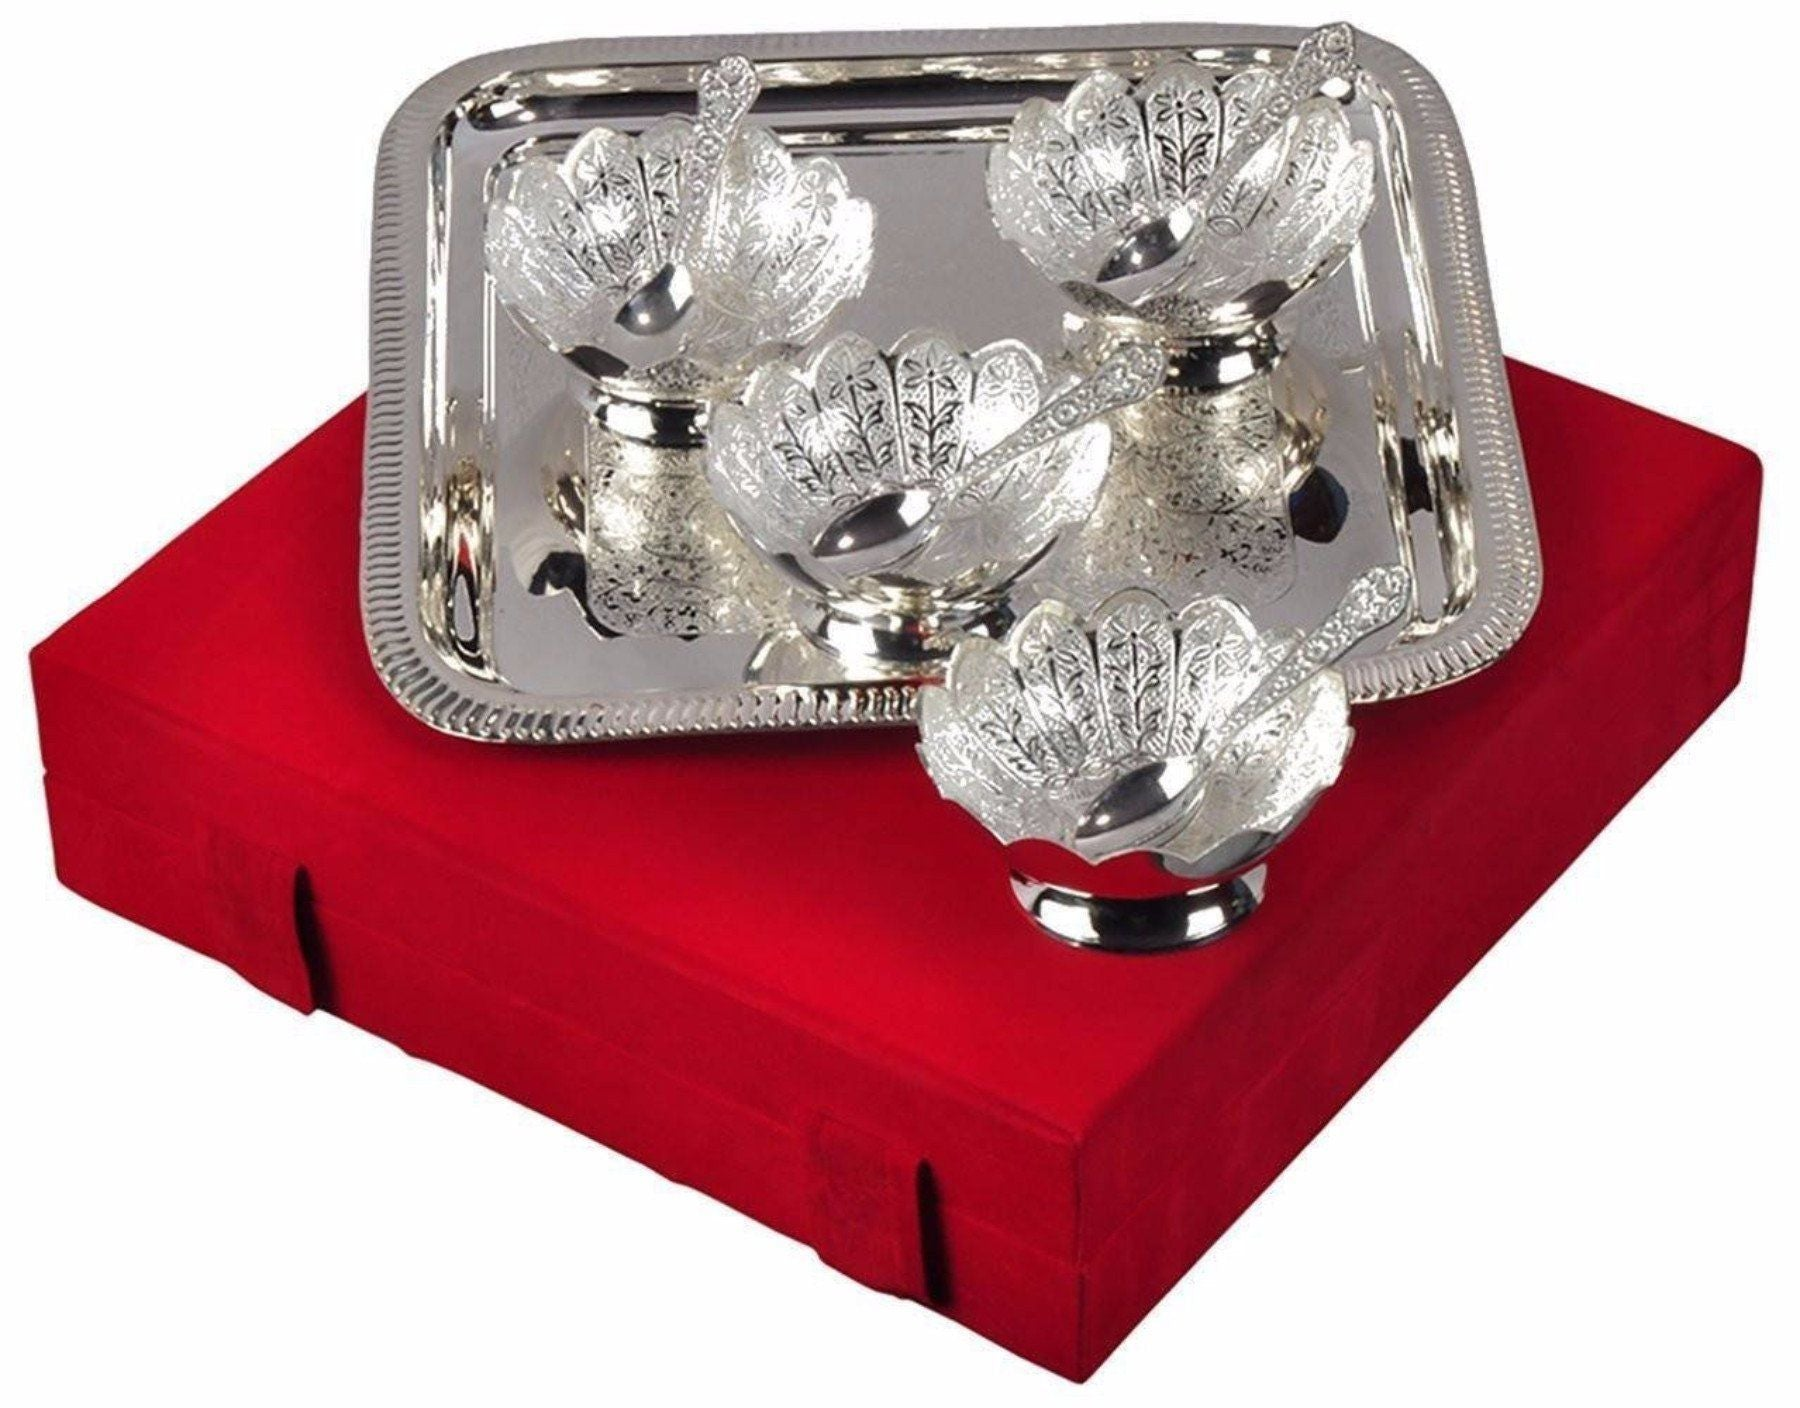 Silver Plated - In Indea Silver Plated Serving Set With 1 Tray, 4 Bowls And 4 Spoon With Velvet Box